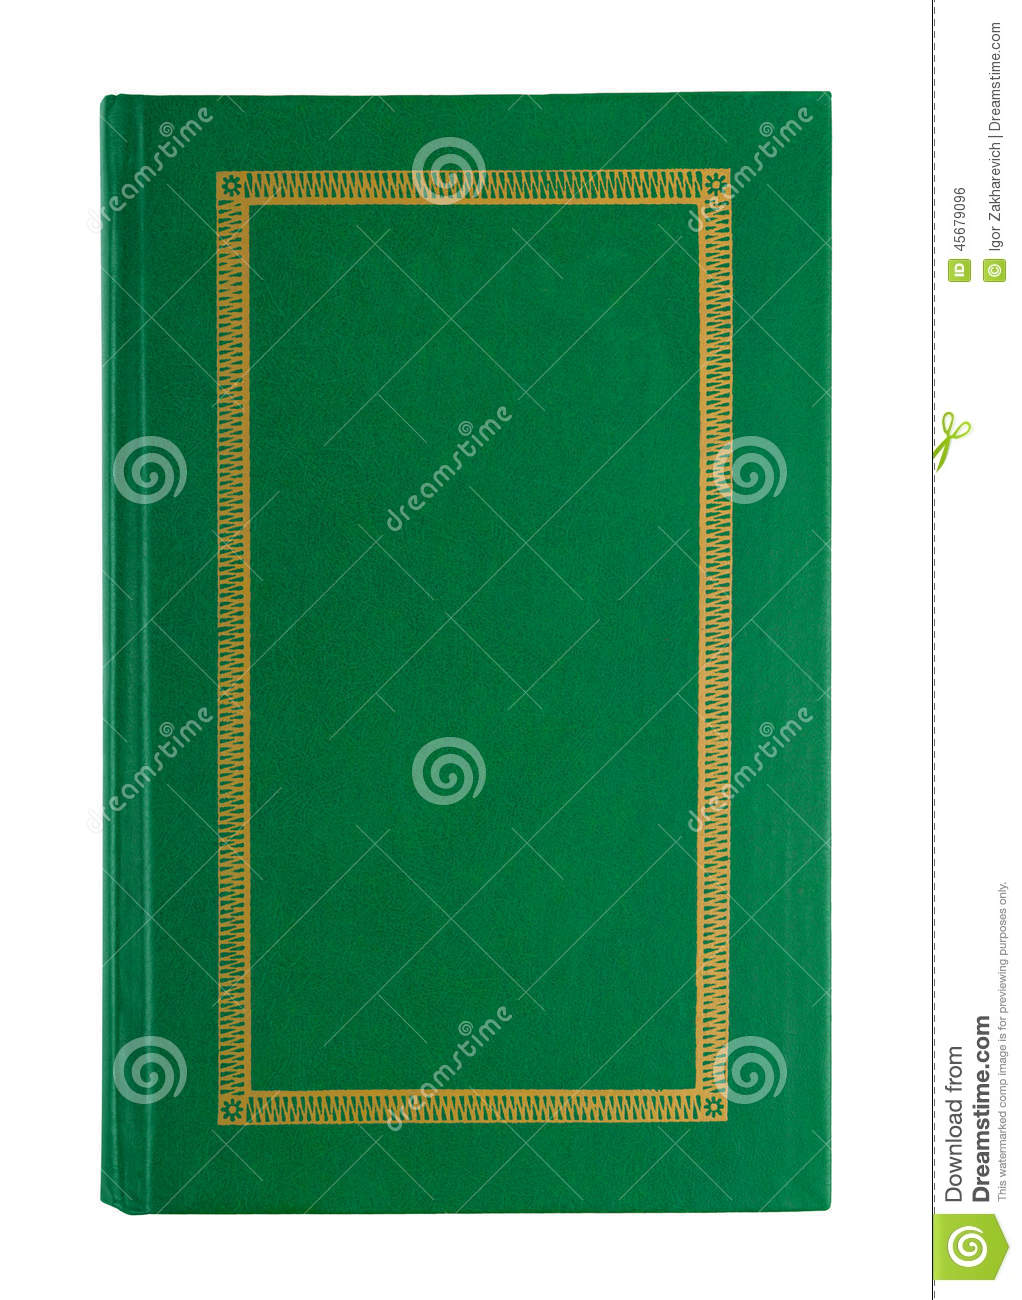 Cookbook With Green Cover : Empty open green book cover stock photo image of dirty